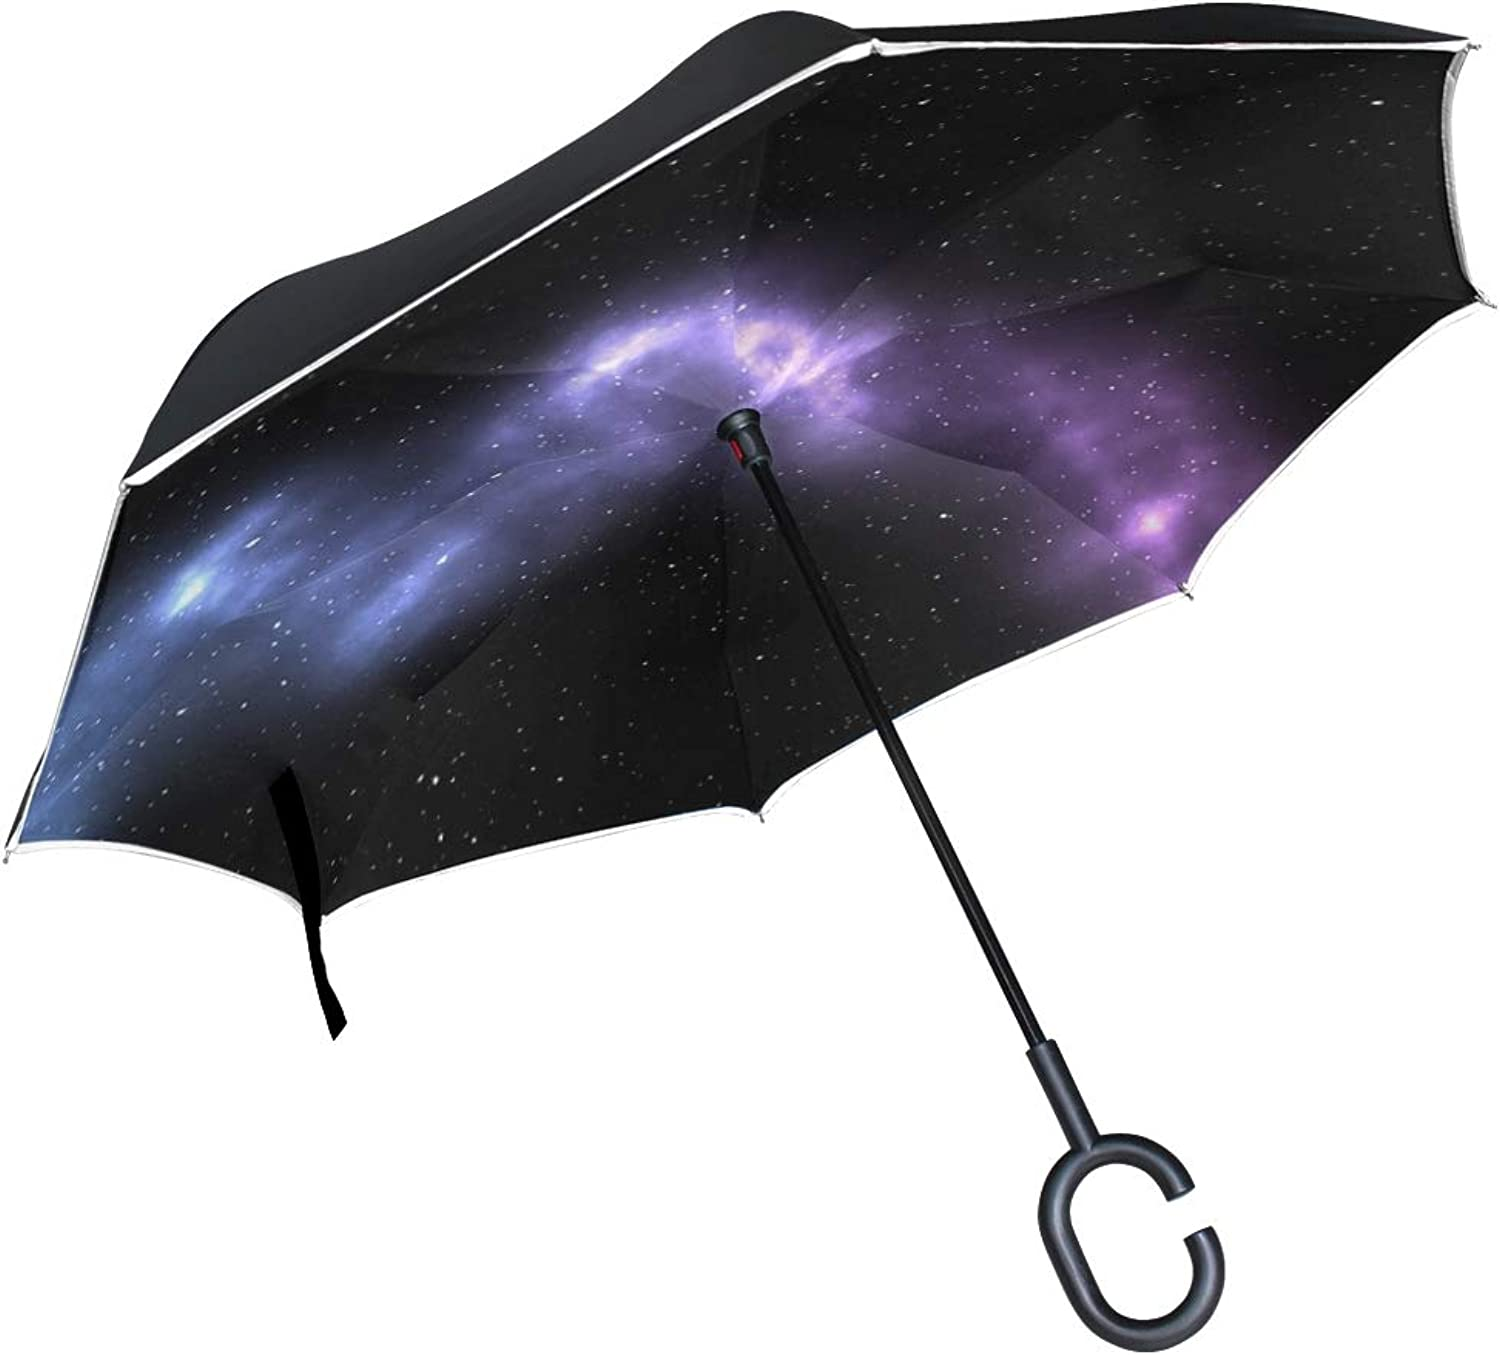 Double Layer Ingreened Abstract Art Artistic Astronomy 2615741 Umbrellas Reverse Folding Umbrella Windproof Uv Predection Big Straight Umbrella for Car Rain Outdoor with CShaped Handle